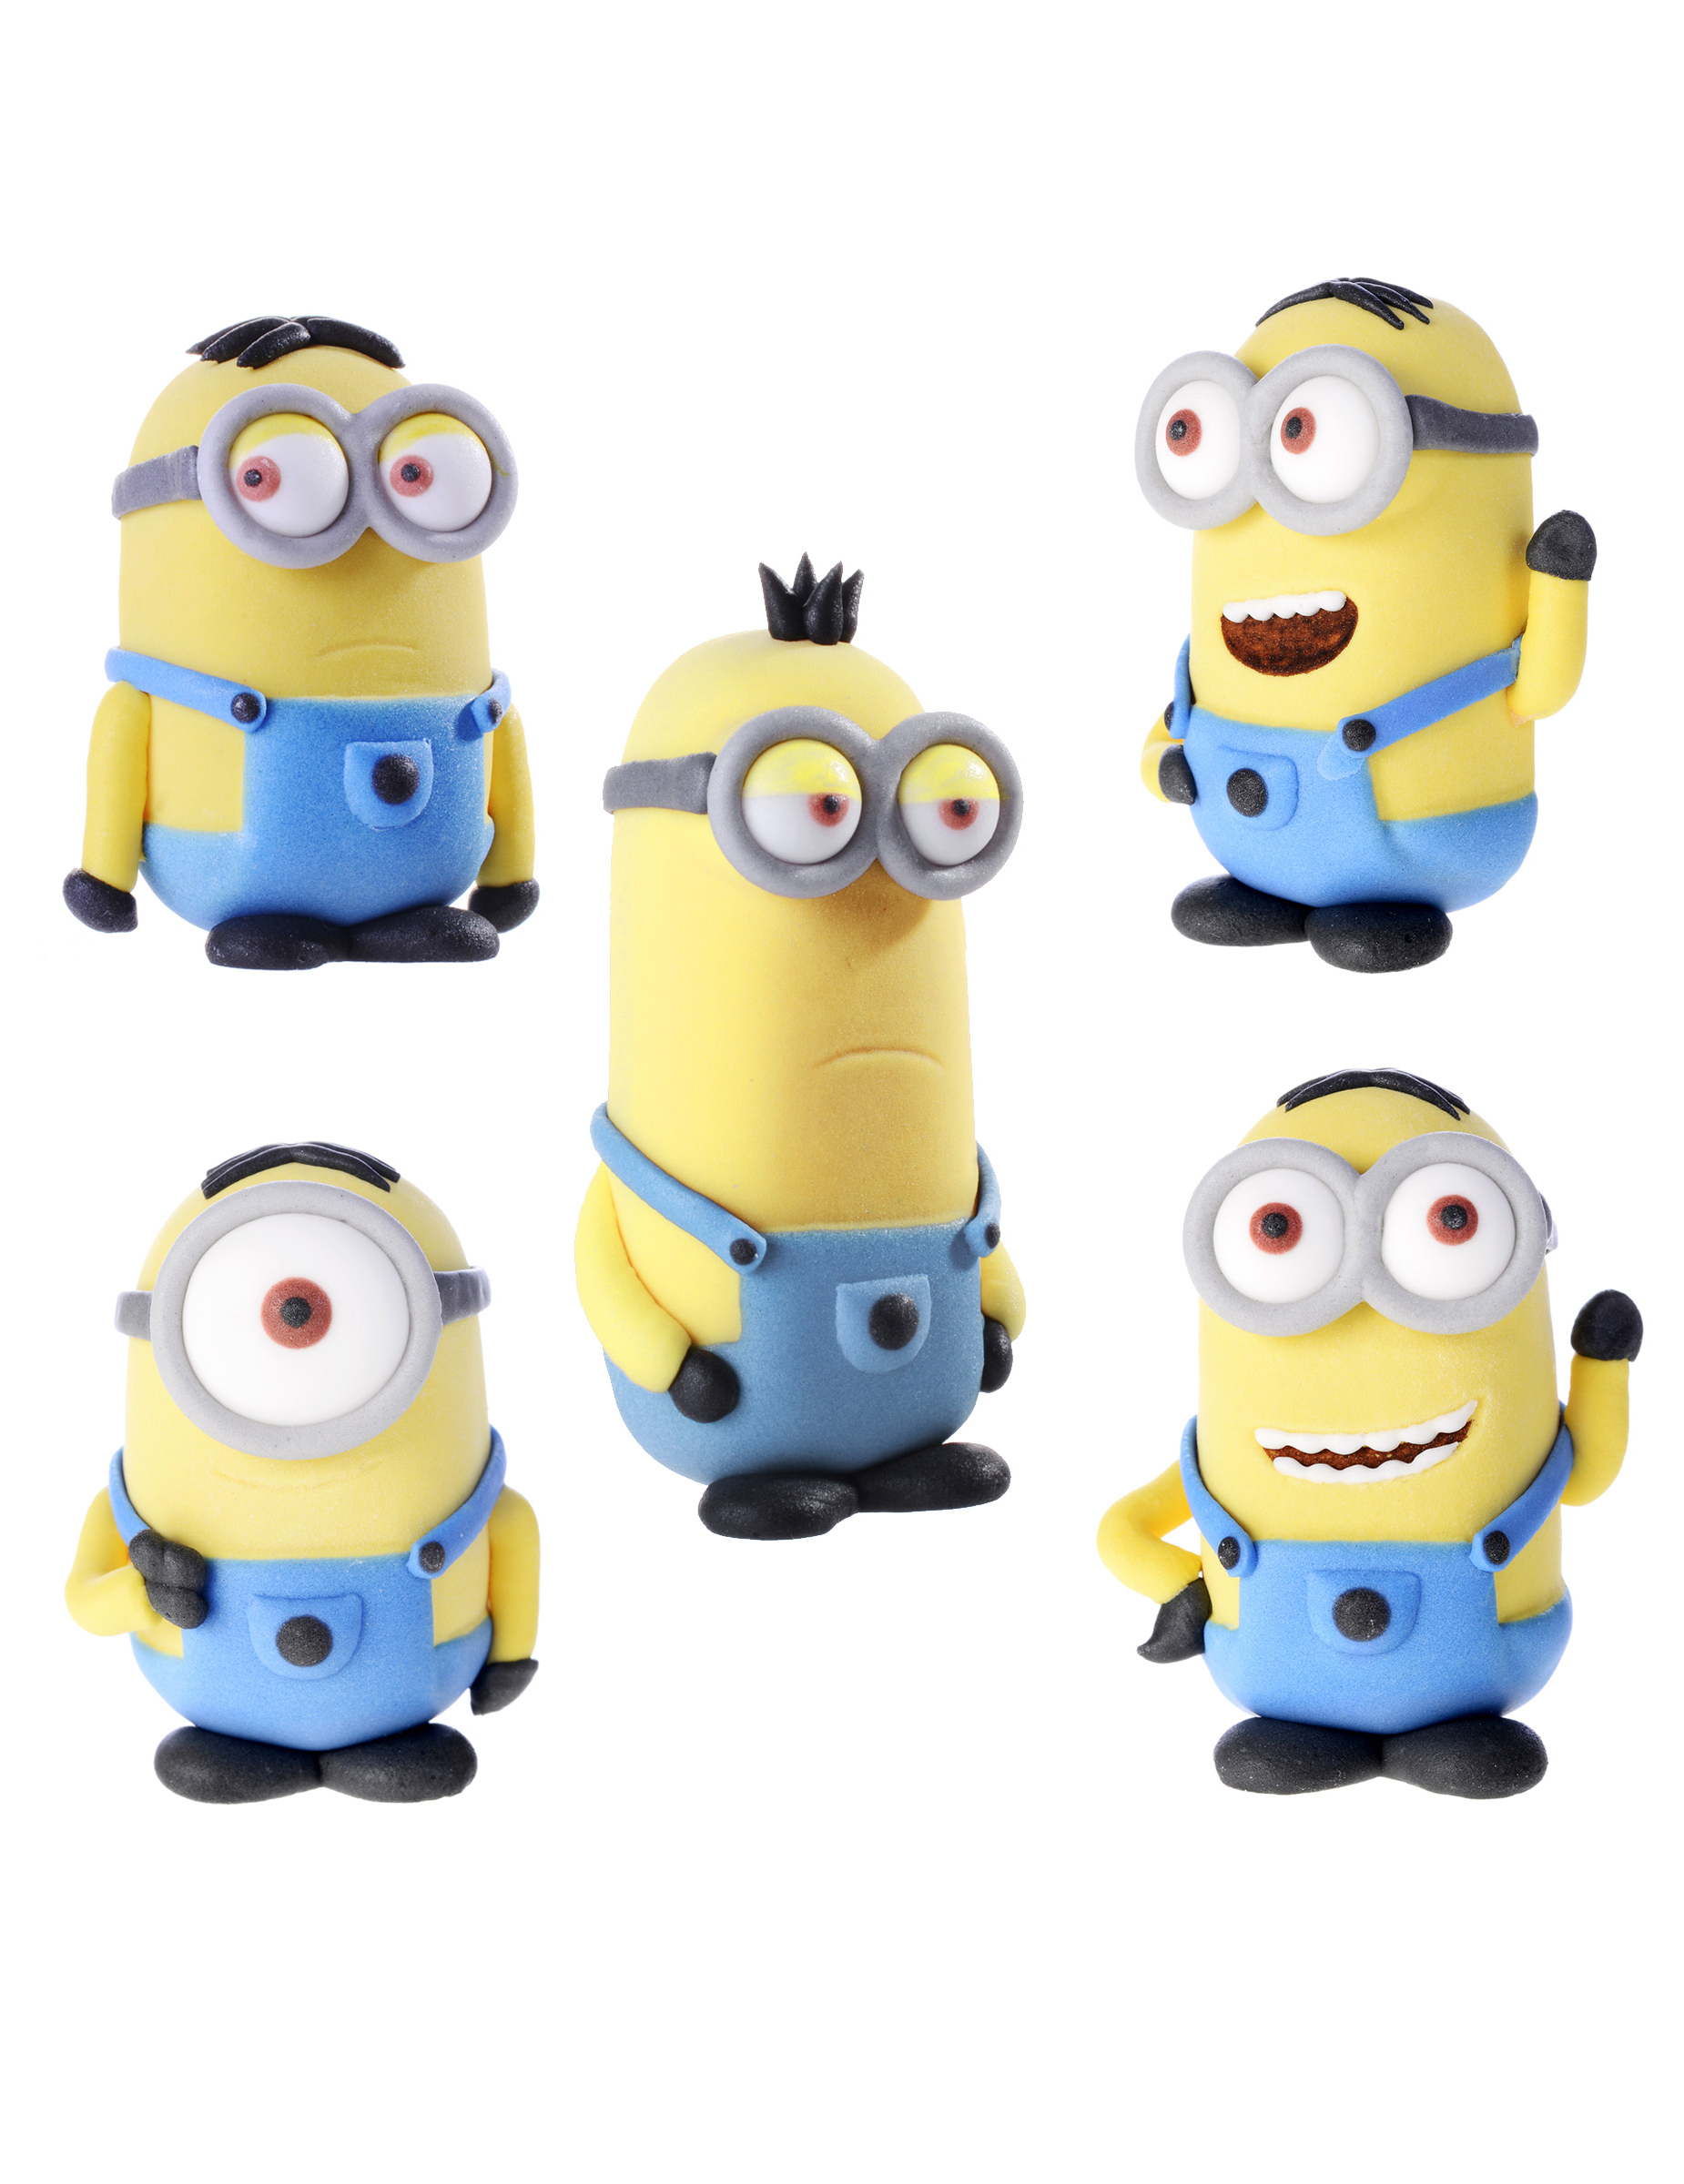 1 figurine en sucre minion d coration anniversaire et f tes th me sur vegaoo party. Black Bedroom Furniture Sets. Home Design Ideas